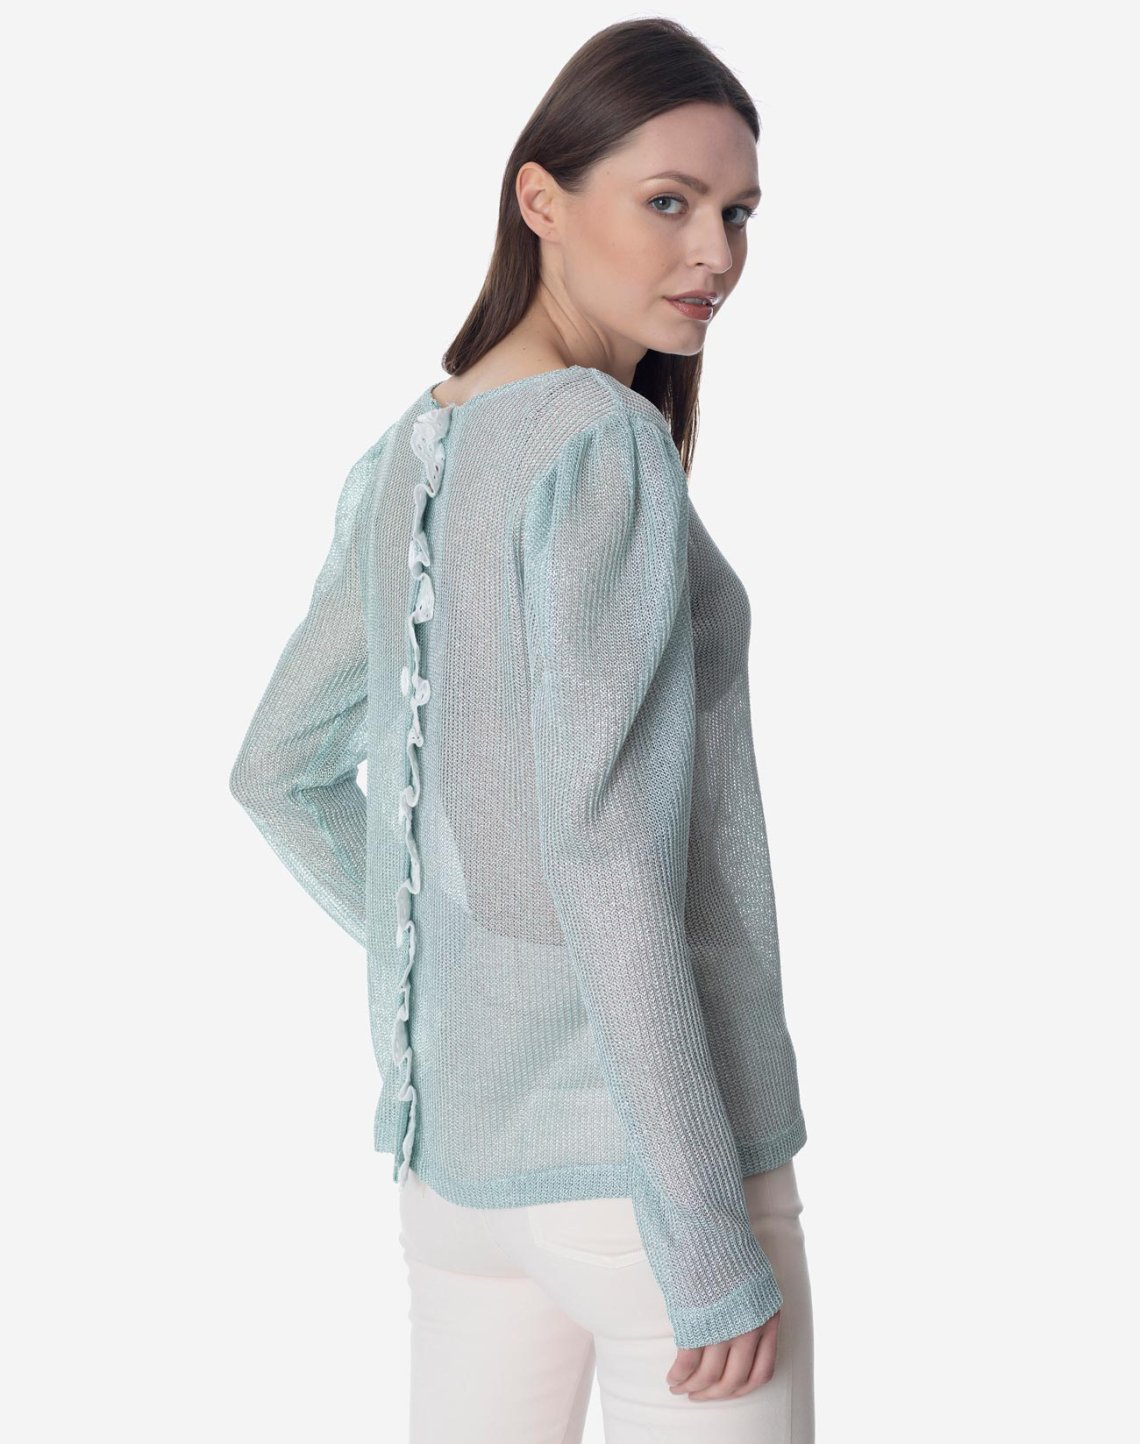 Semi sheer  top with lace